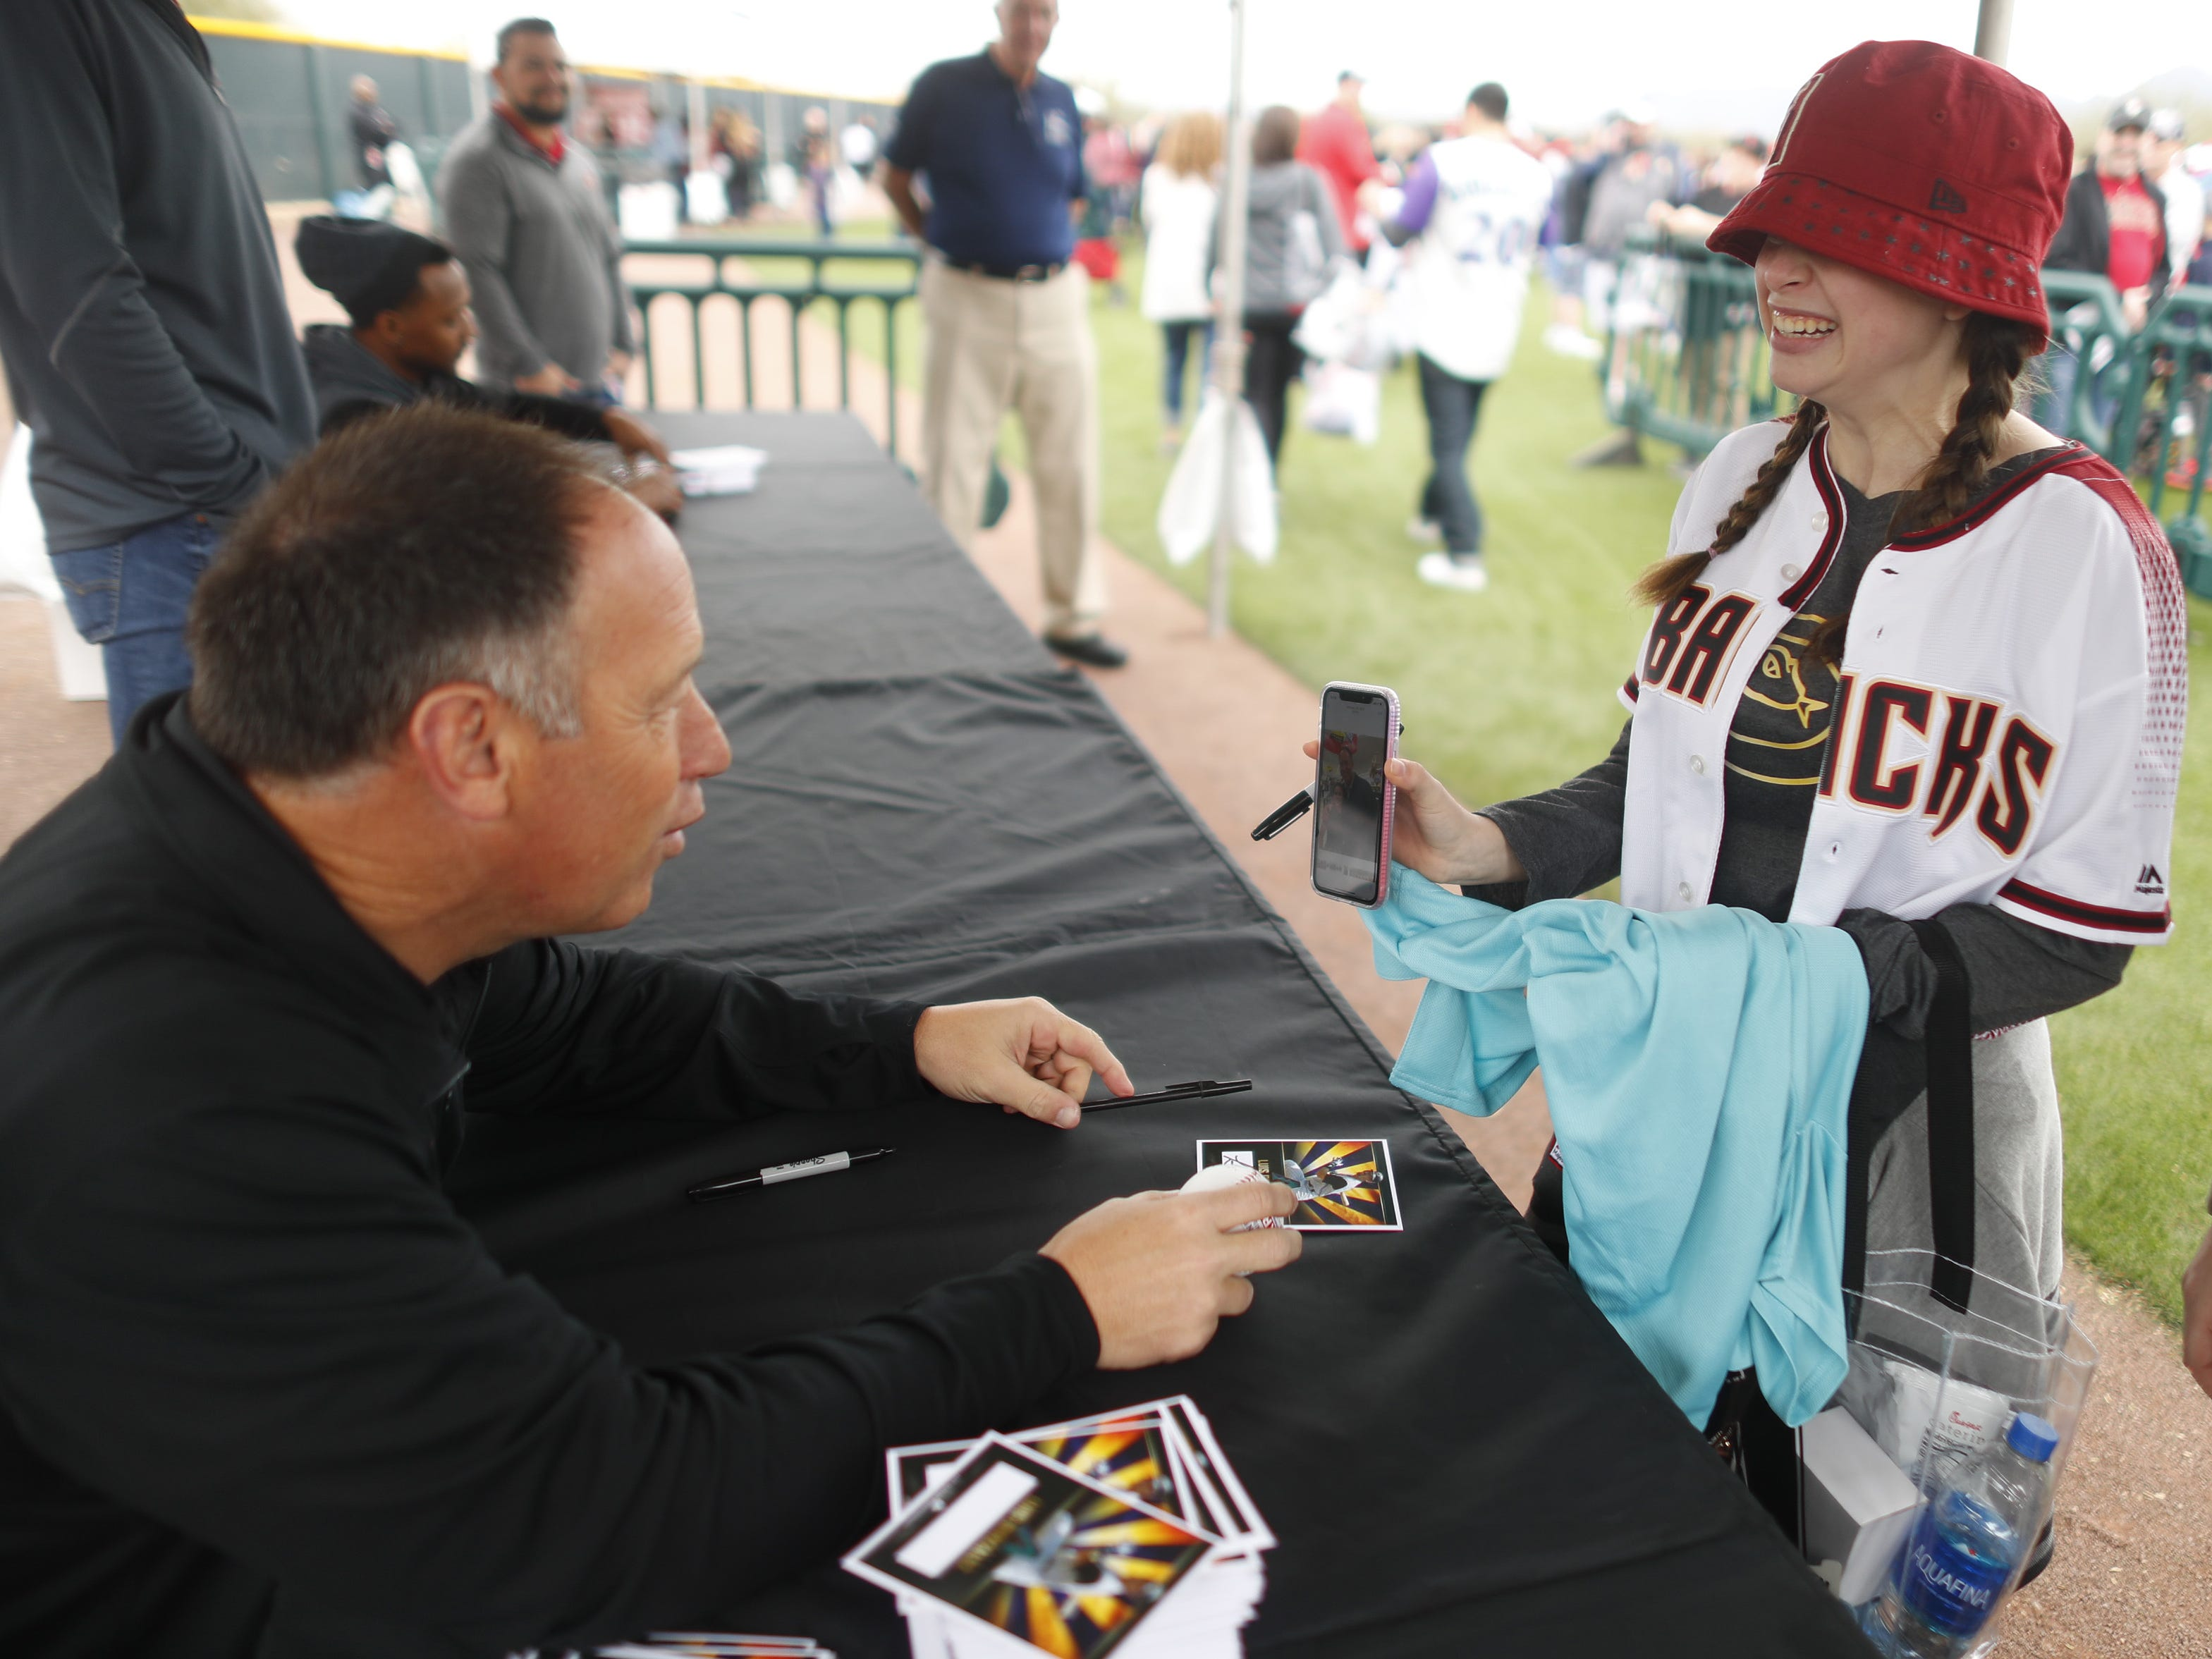 Diamondbacks legend Luis Gonzalez looks at a picture from Lainey Rendelman who he had previous met and posed for a picture with during the Diamondbacks Fan Fest at Salt River at Talking Sticks on February 9, 2019.